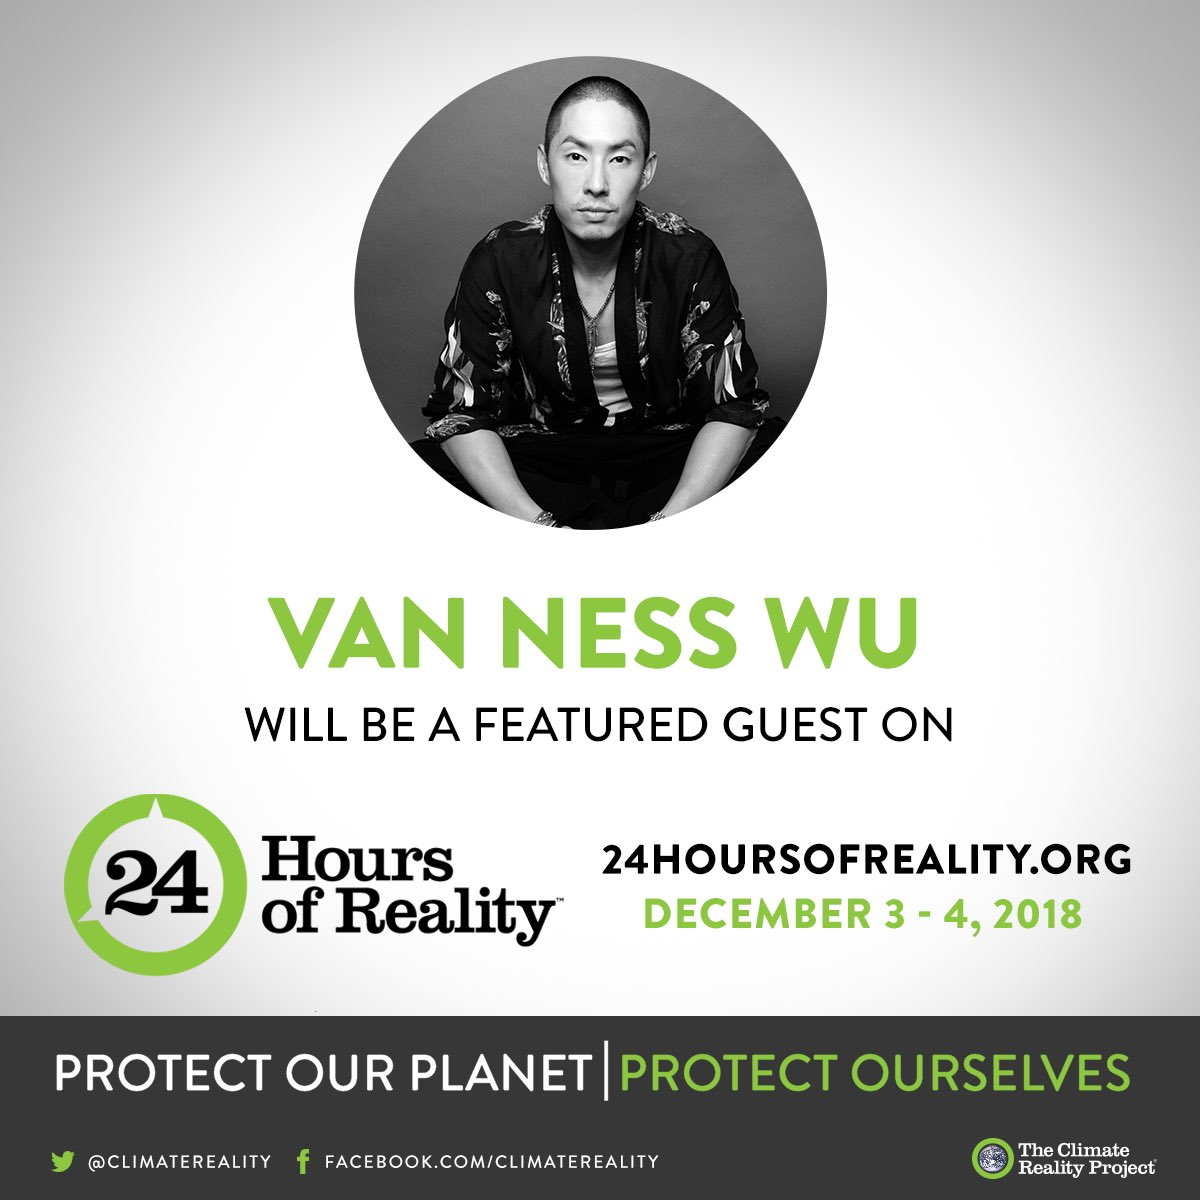 Join in the conversation tomorrow with me at #24HoursofReality @ClimateReality https://t.co/Quv25jexXE